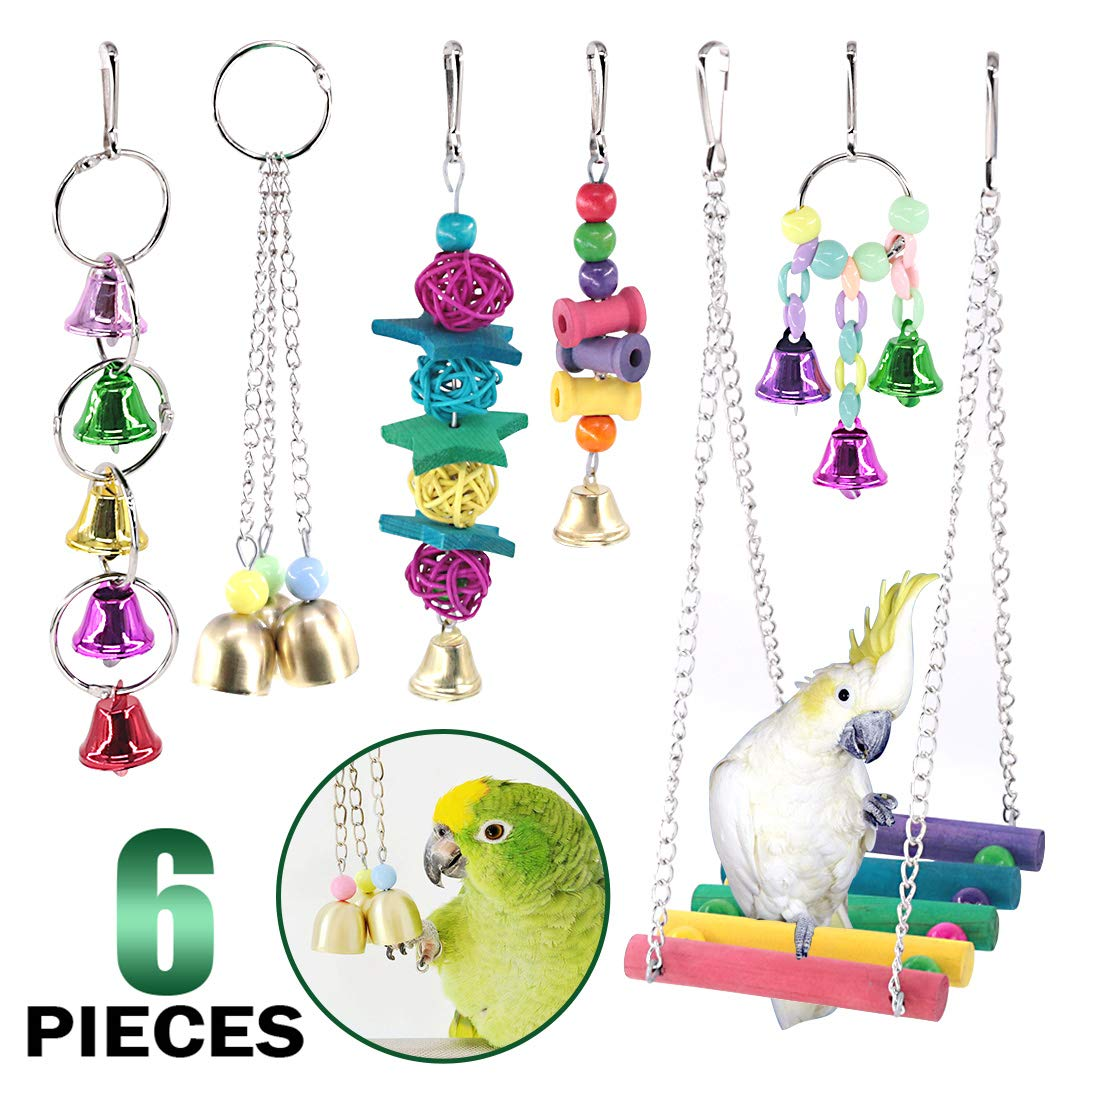 Keadic 6 Pack Bird Parrot Chewing Toys Set, Bird Perches Swing Toys Hanging Toys with Bells for Parakeets, Cockatiels, Conures, Macaws, Parrots, Finches and Love Birds by Keadic